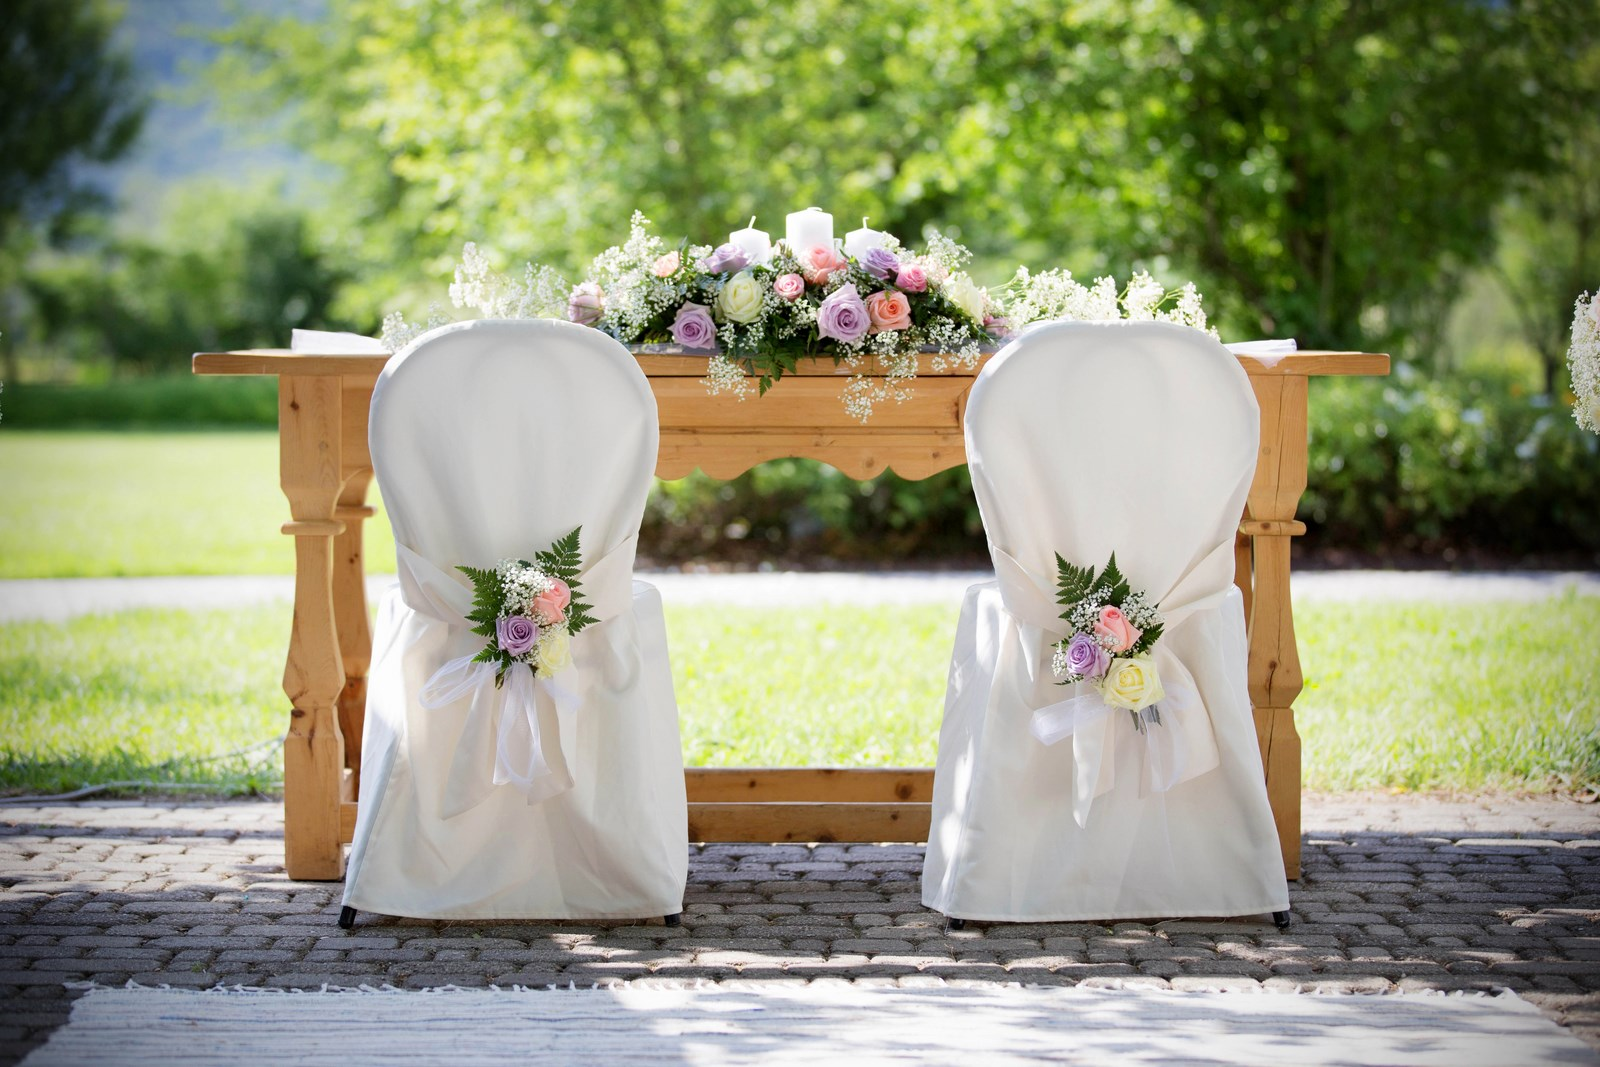 Wedding Chair Covers & Weddings u0026 Events Venue Dressing Table-Chair Covers | Premier Party ...